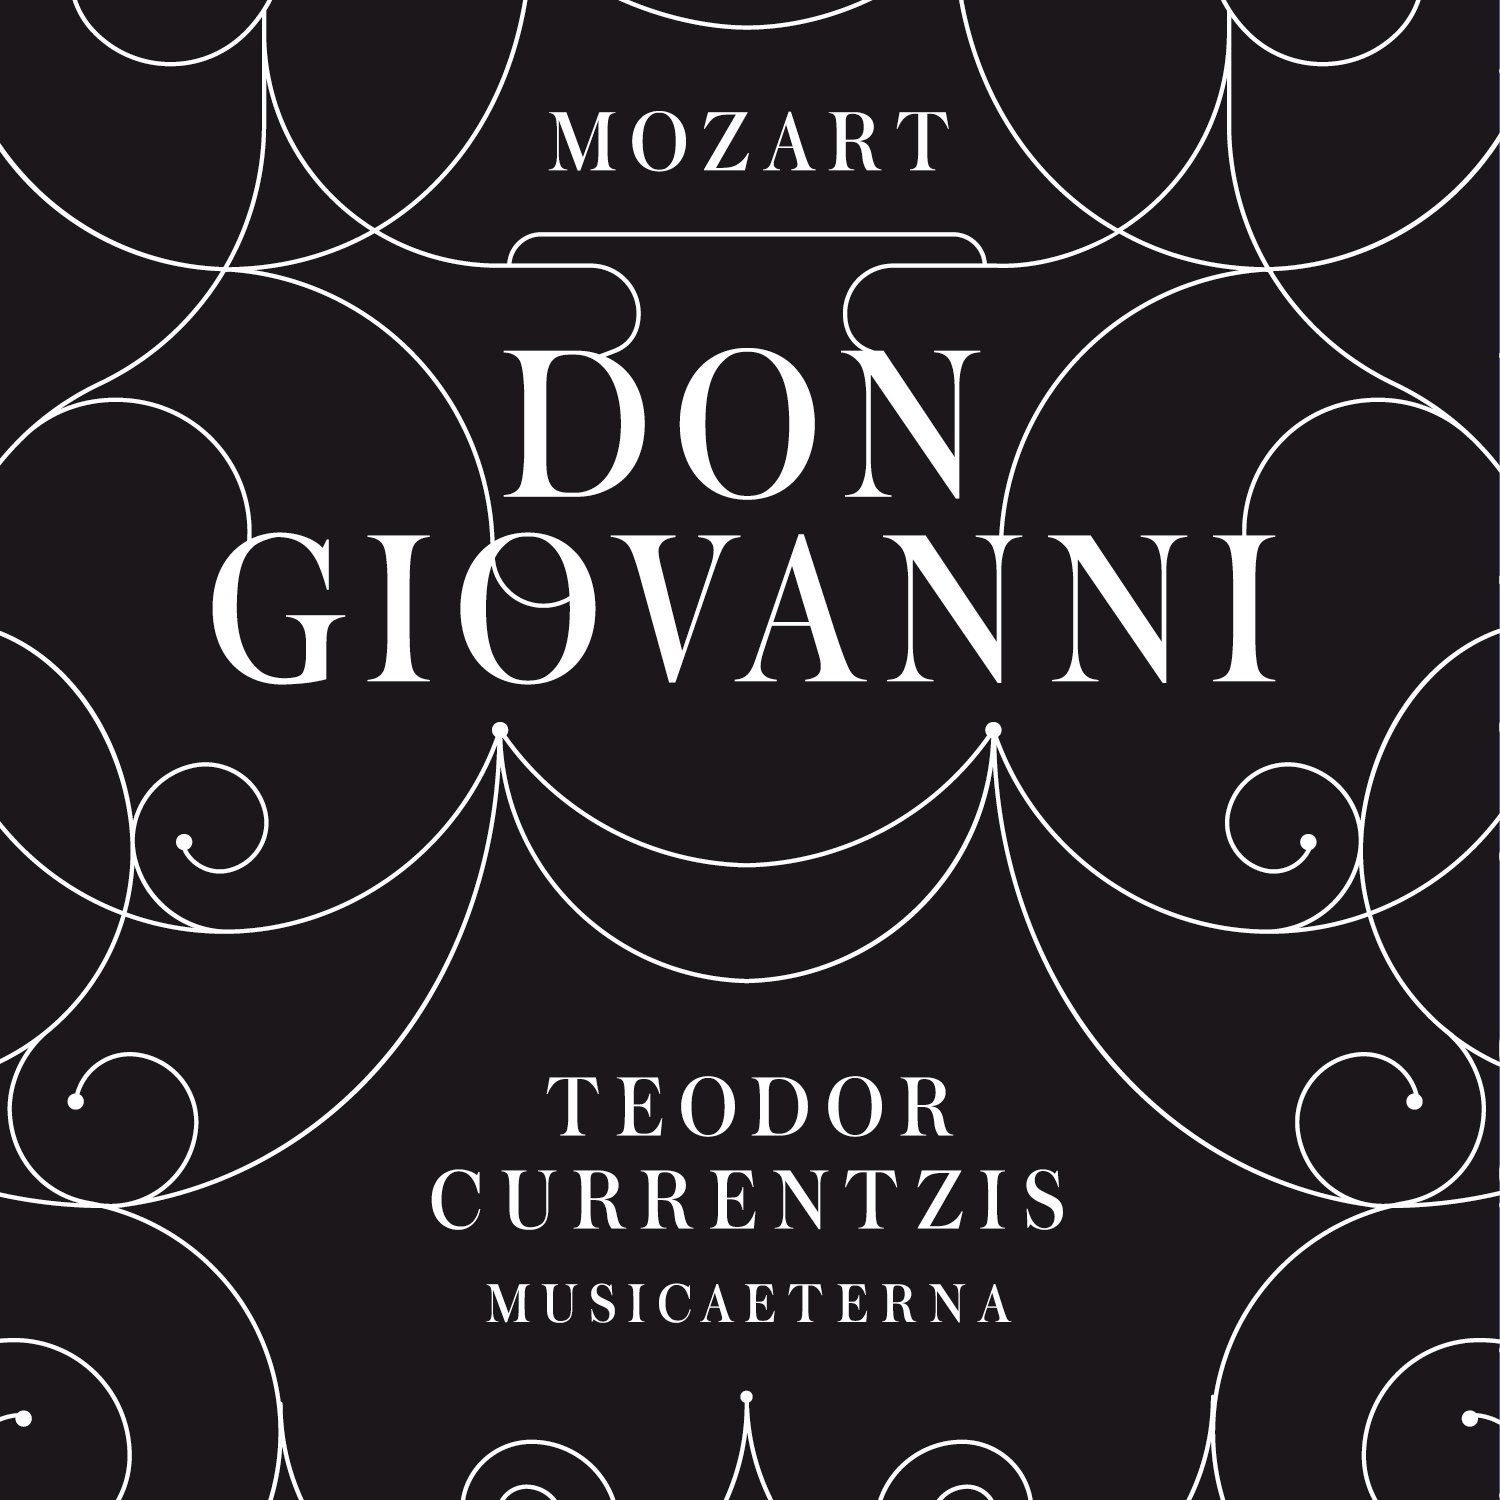 RECORDING OF THE MONTH | November 2016: Wolfgang Amadeus Mozart - DON GIOVANNI, K. 527 (Sony Classical 88985316032)